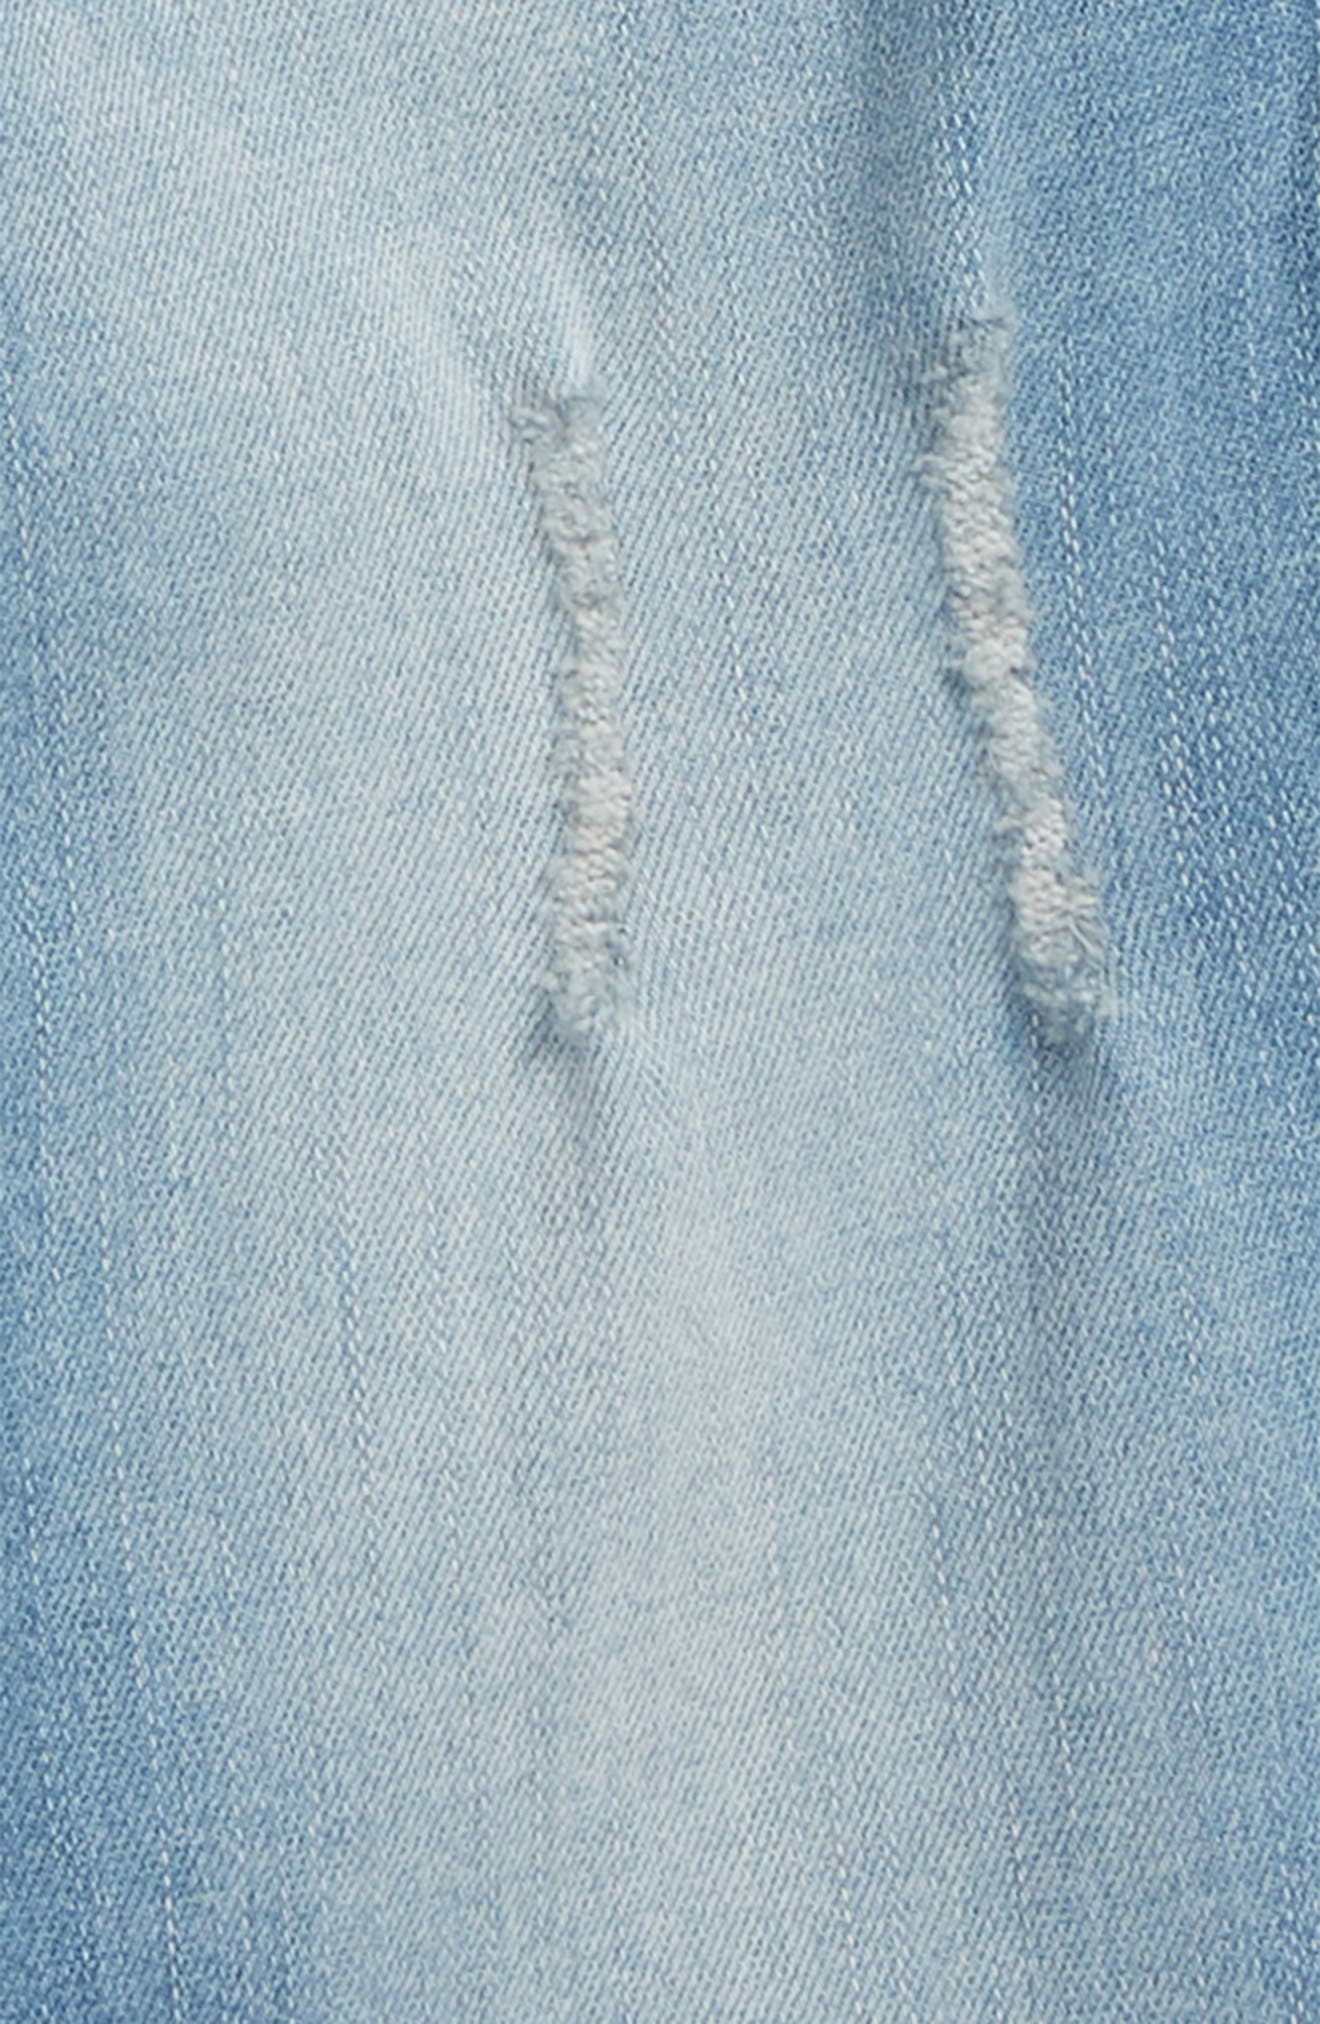 Wide Cuff Jeans,                             Alternate thumbnail 2, color,                             Echo Wash